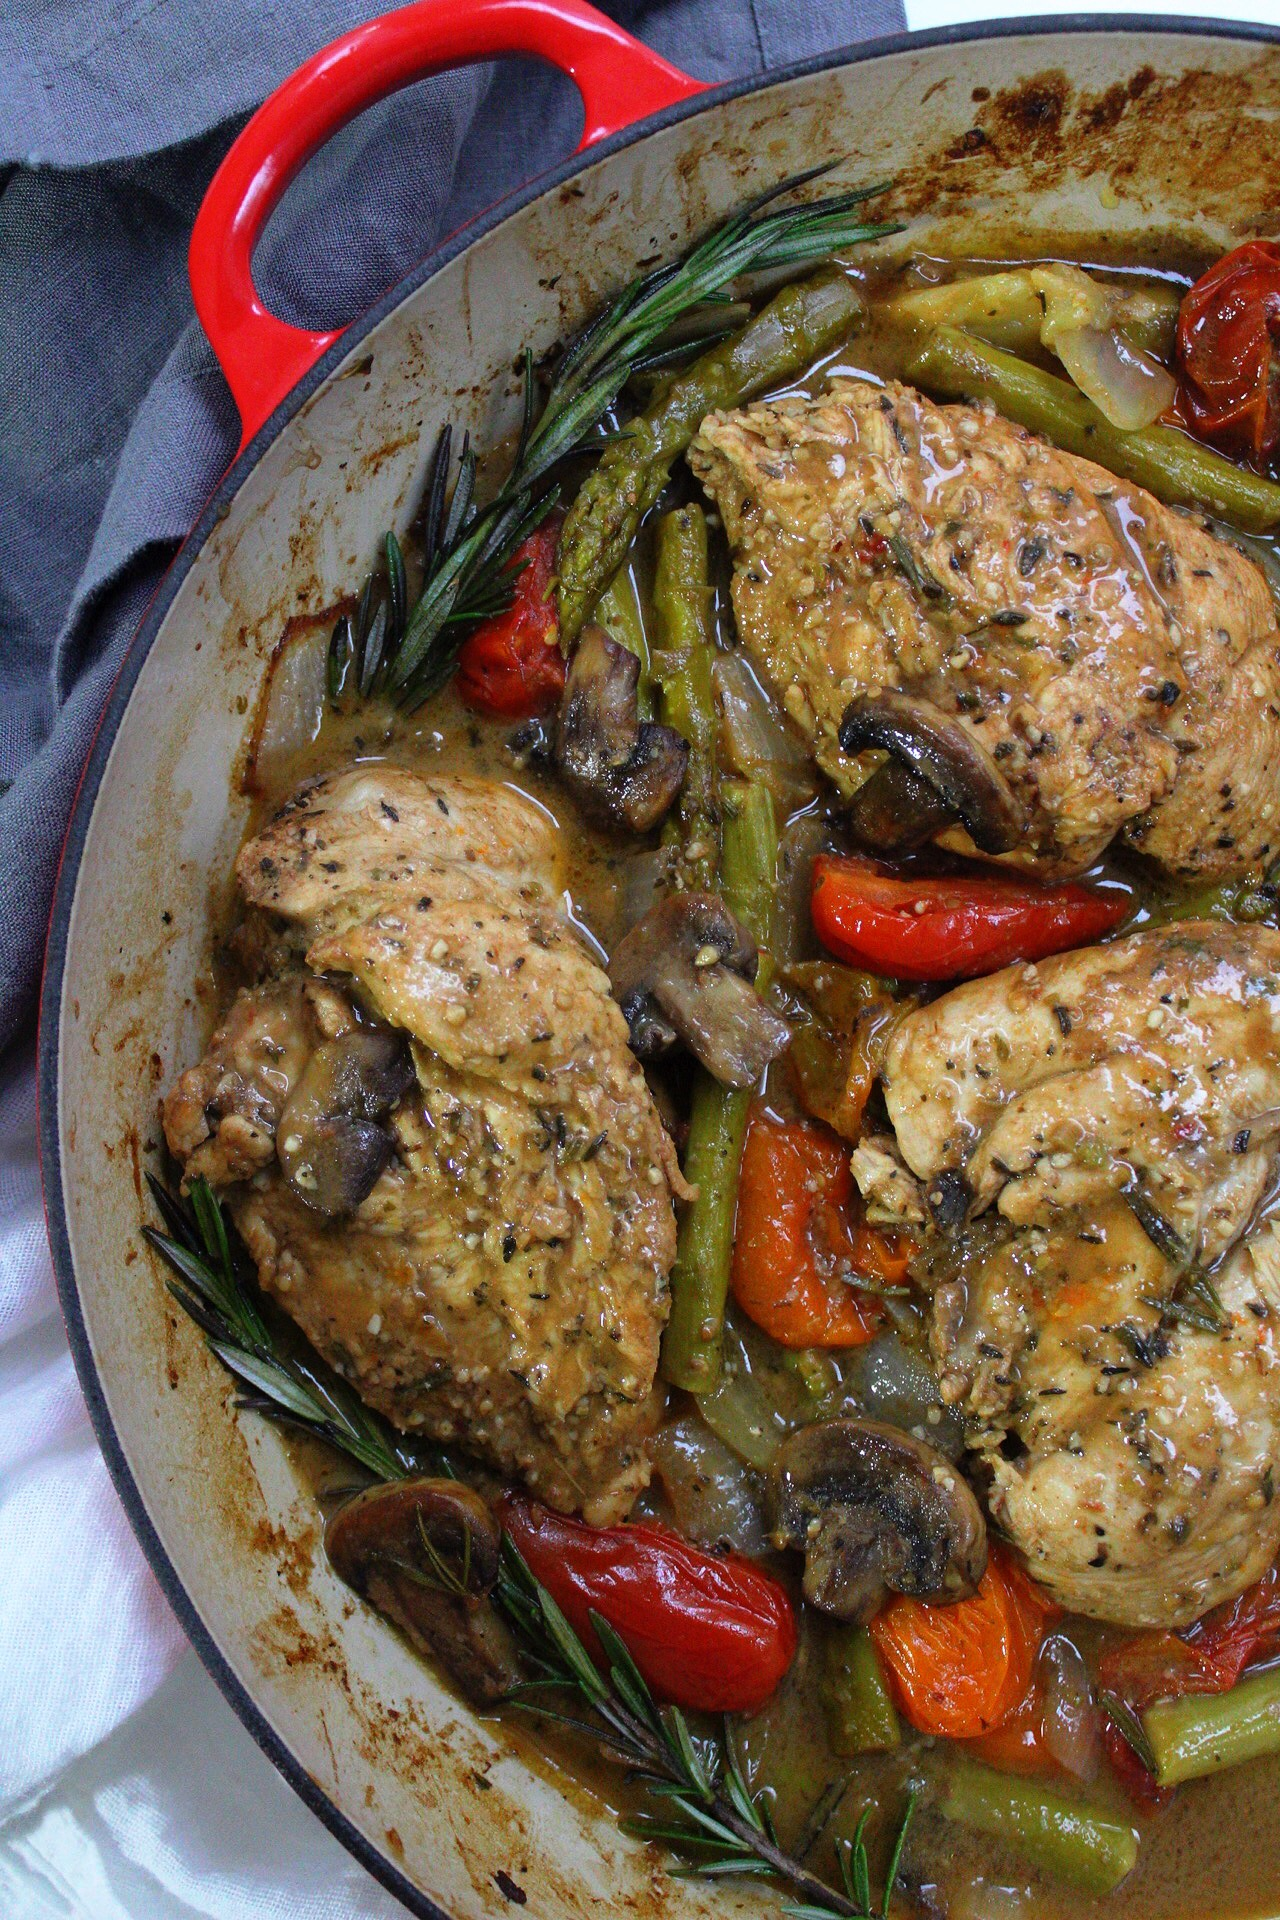 One Pan Mustard Chicken and Veggies: 30 Minutes, Whole30 & Low-Carb